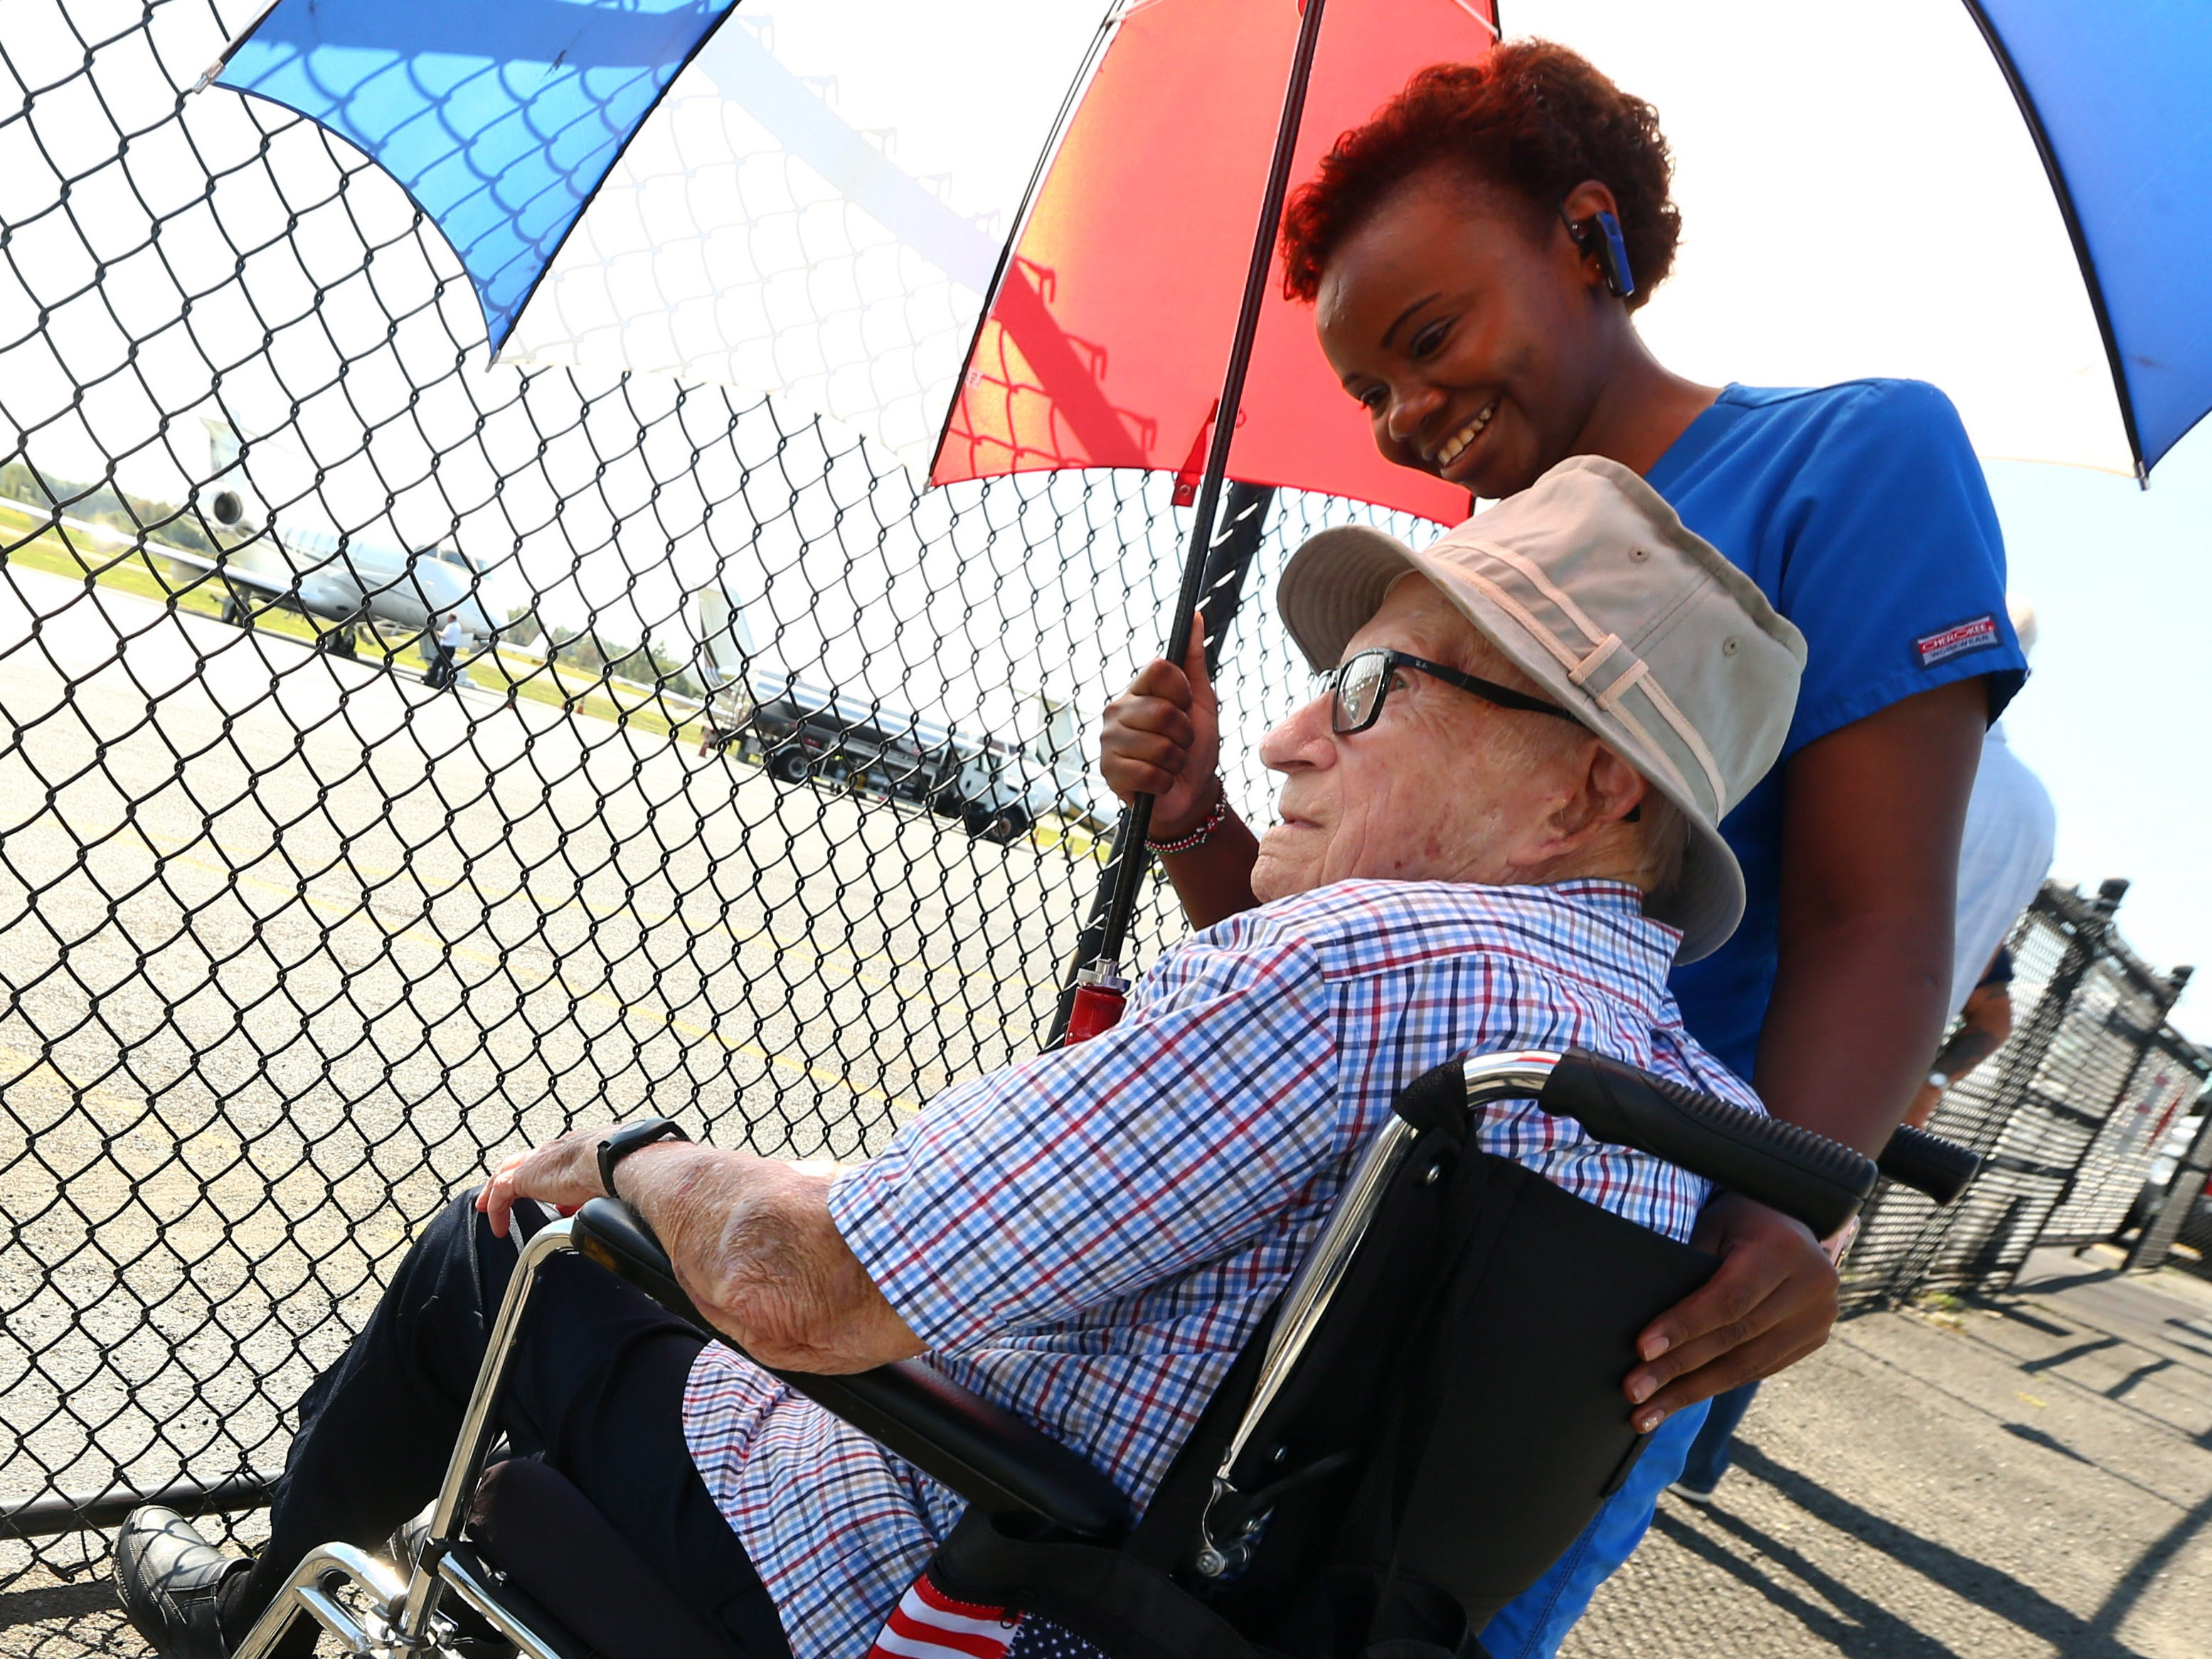 94-year-old Harry Kramer of Morristown and certified nursing assistant Rose Roberson wait for the arrival of  a B-25 Mitchell bomber, the type of plane Kramer flew in WWII. Four fighters flew into Morristown Municipal Airport as part of the Collings FoundationÕs Wings of Freedom Tour. September 4, 2018, Hanover, NJ